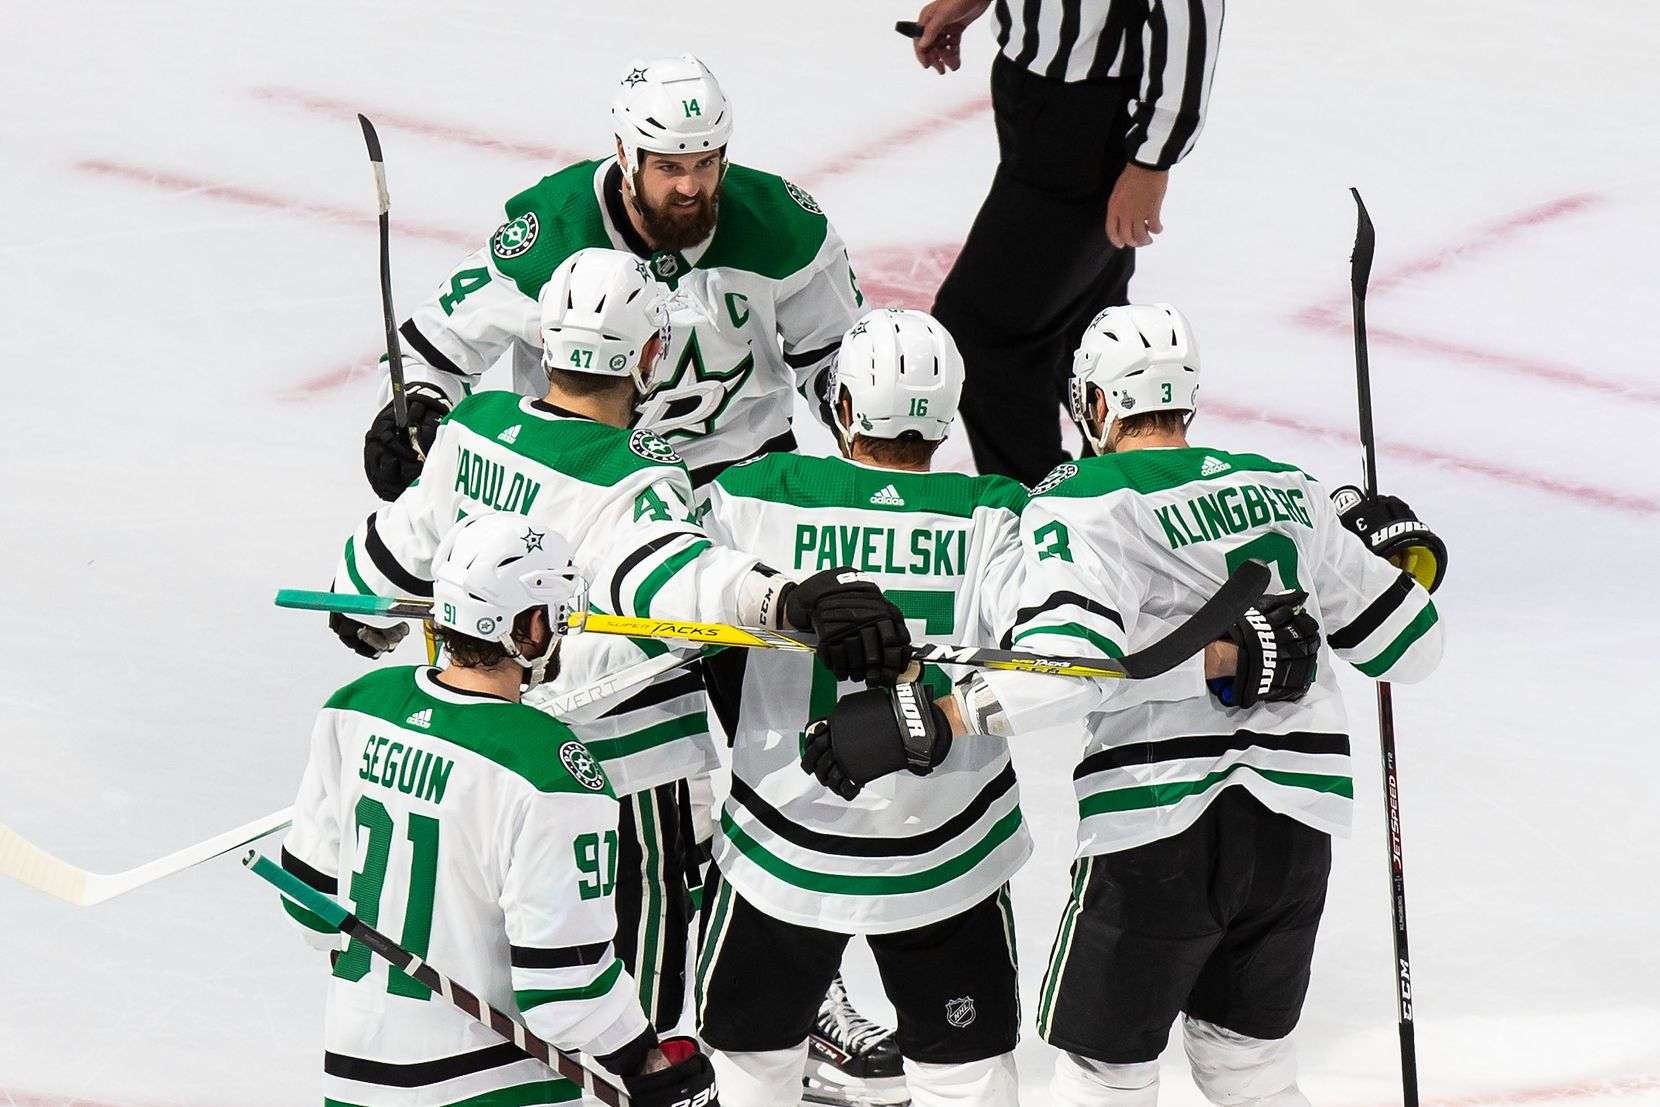 Jamie Benn (14), Alexander Radulov (47), Tyler Seguin (91), Joe Pavelski (16) and John Klingberg (3) of the Dallas Stars celebrate Pavelski's goal against the Tampa Bay Lightning during Game Two of the Stanley Cup Final at Rogers Place in Edmonton, Alberta, Canada on Monday, September 21, 2020. (Codie McLachlan/Special Contributor)